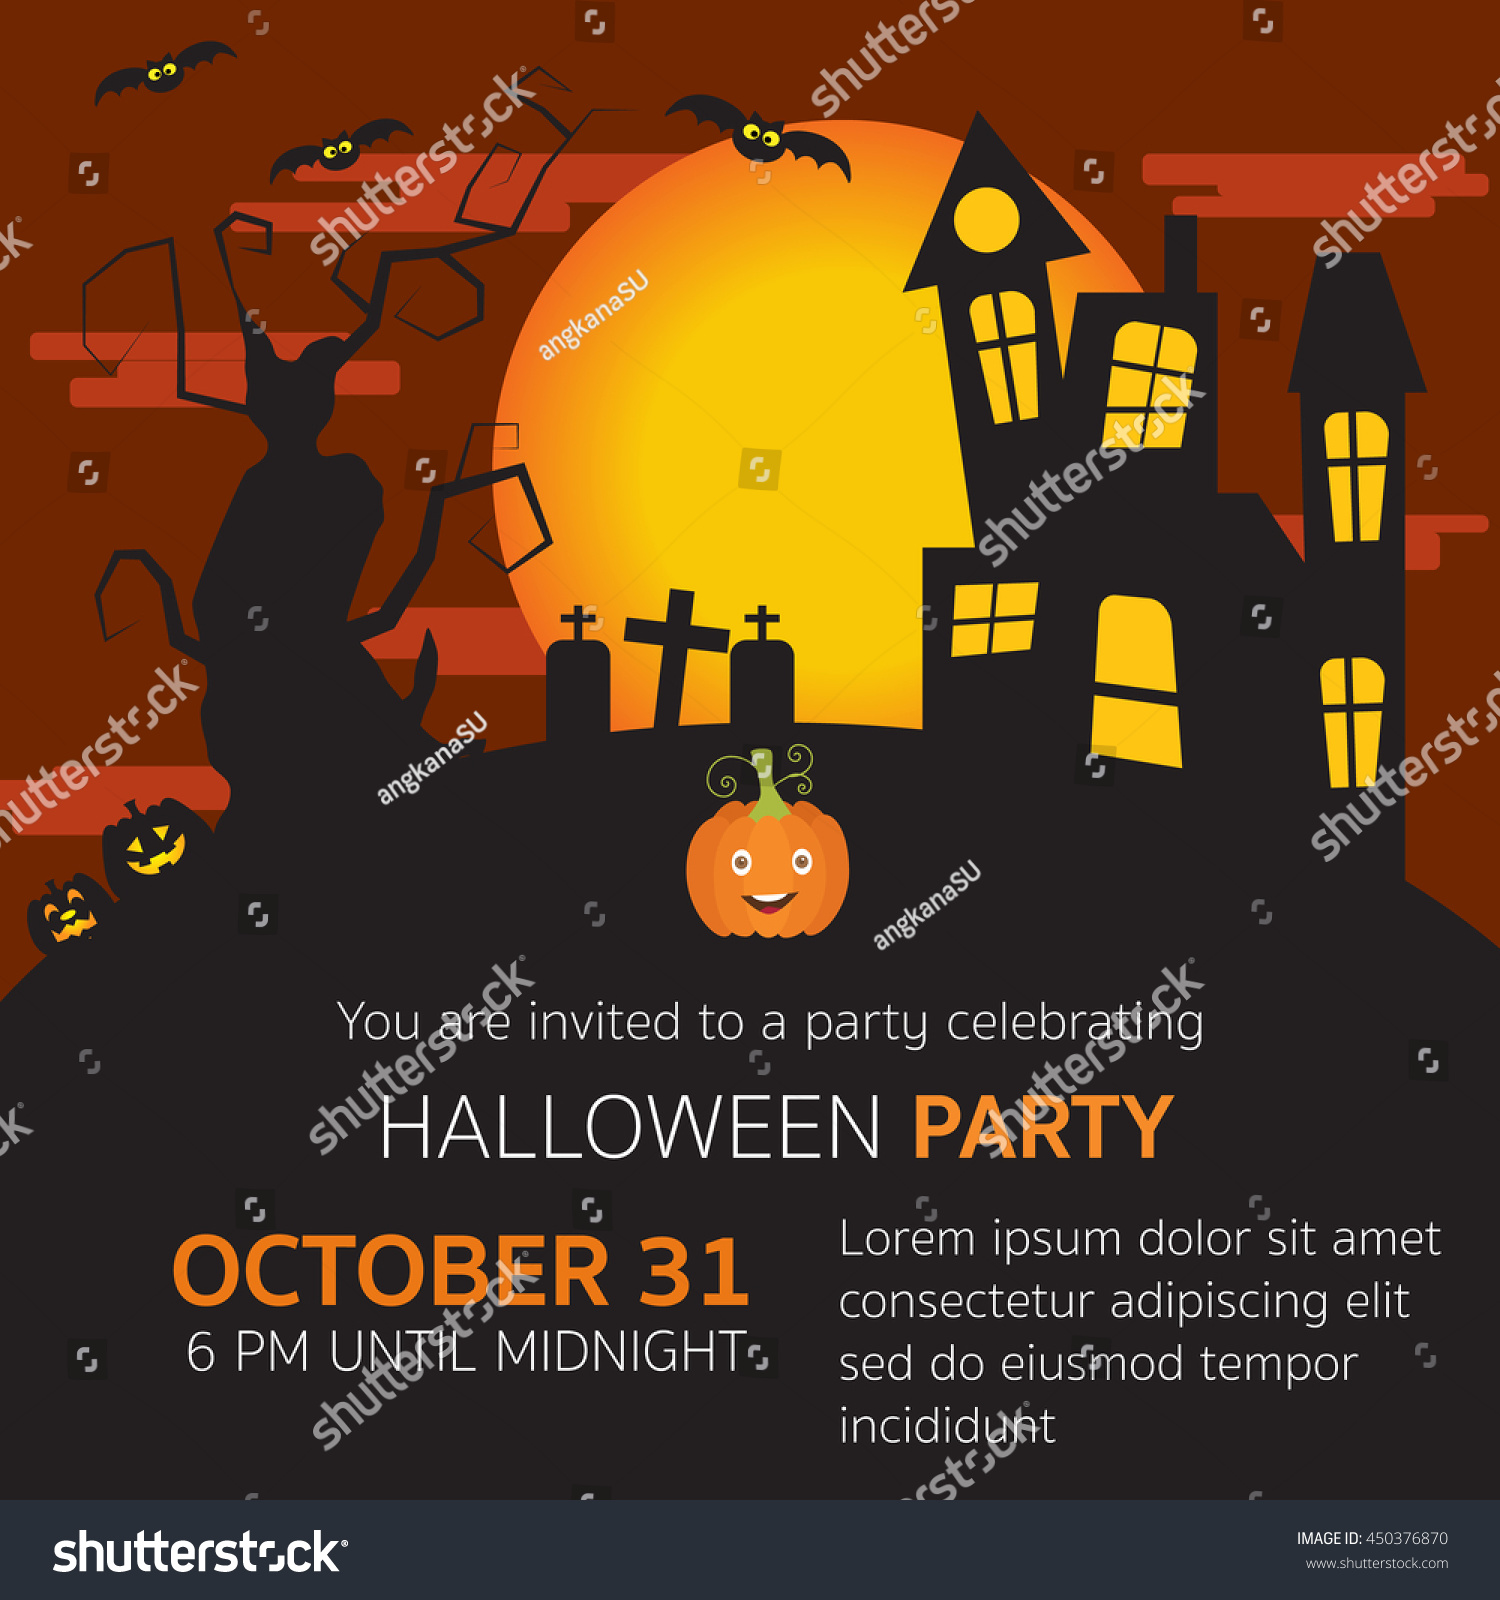 Halloween Party Invitation Horror Housegrave Yardpumpkinsold – Scary or Horror Invitation Cards